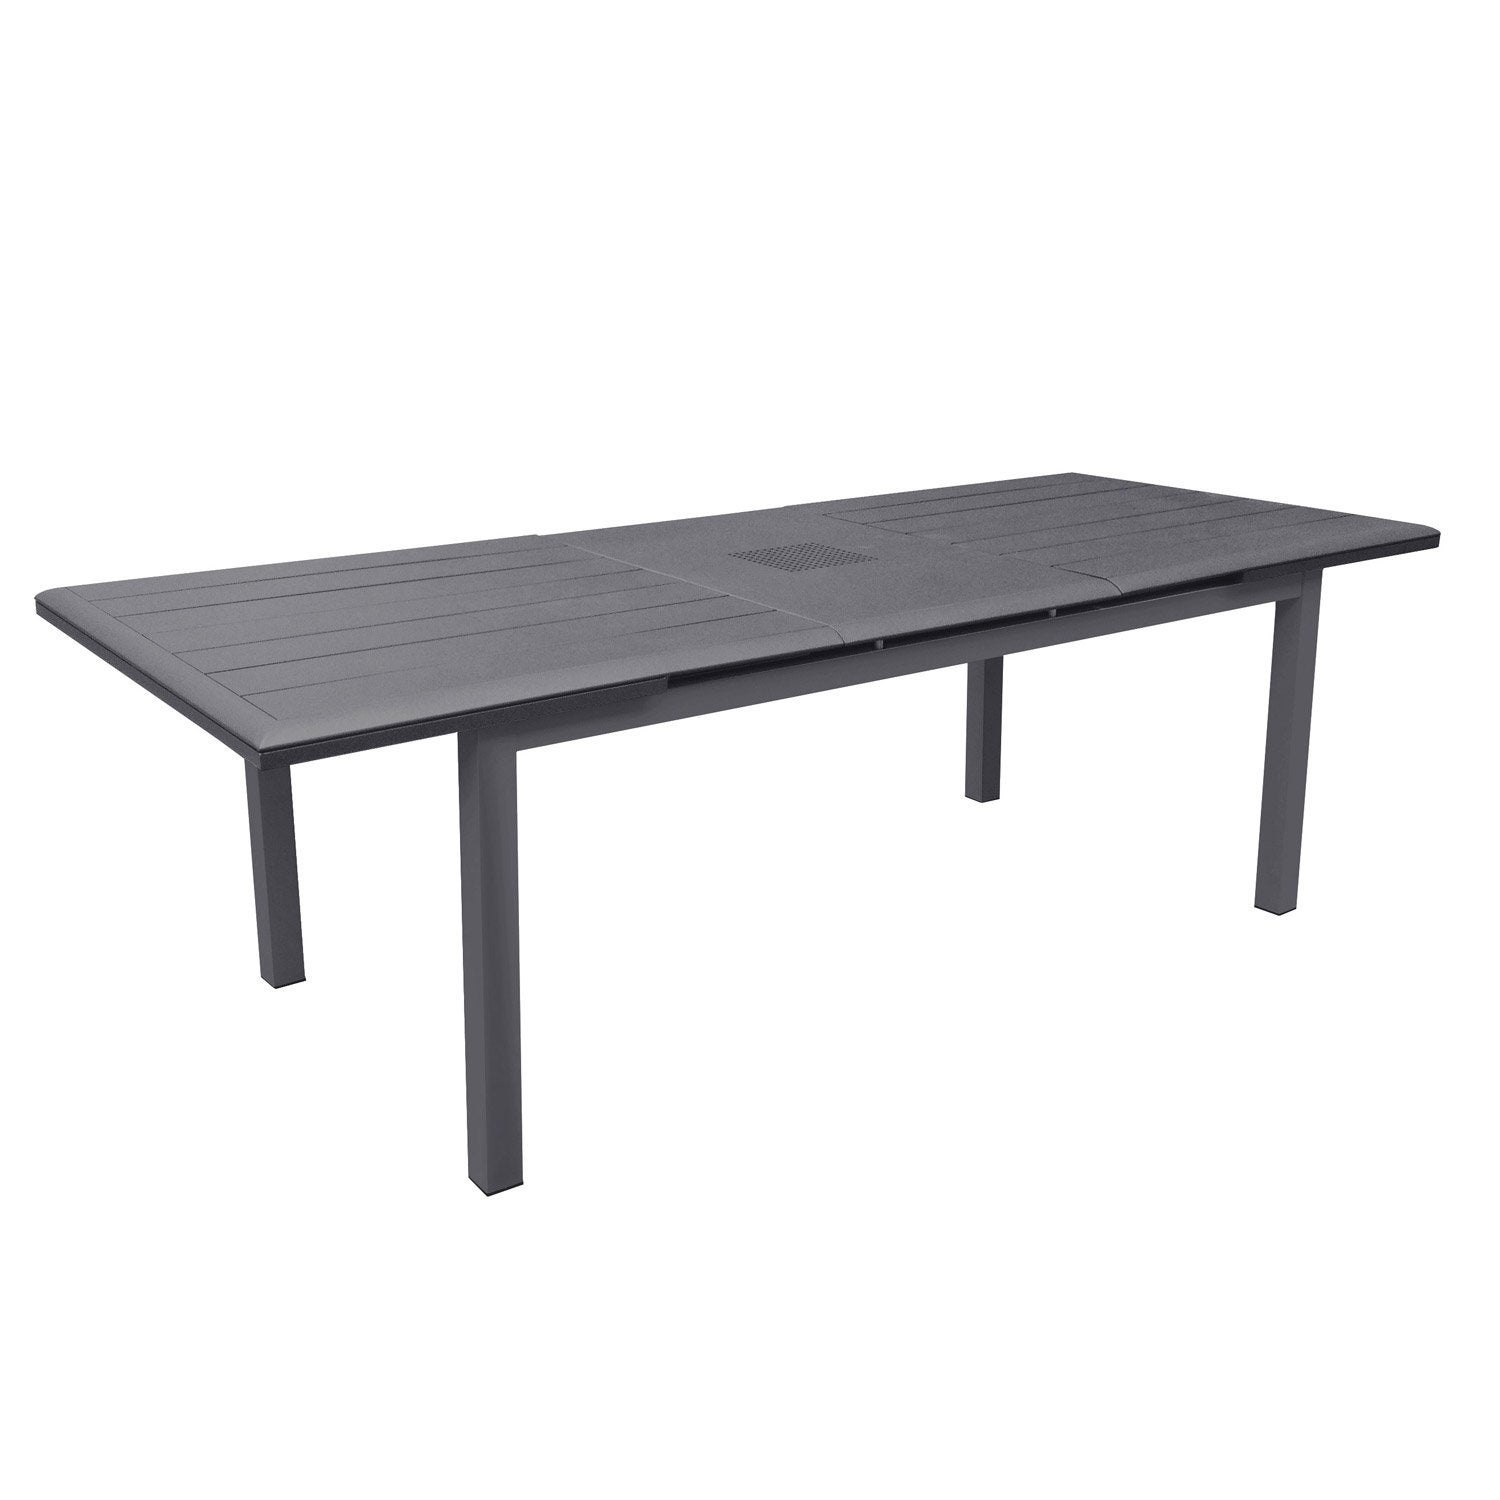 Table de jardin louisiane rectangulaire gris 6 8 personnes for Leroy merlin table jardin